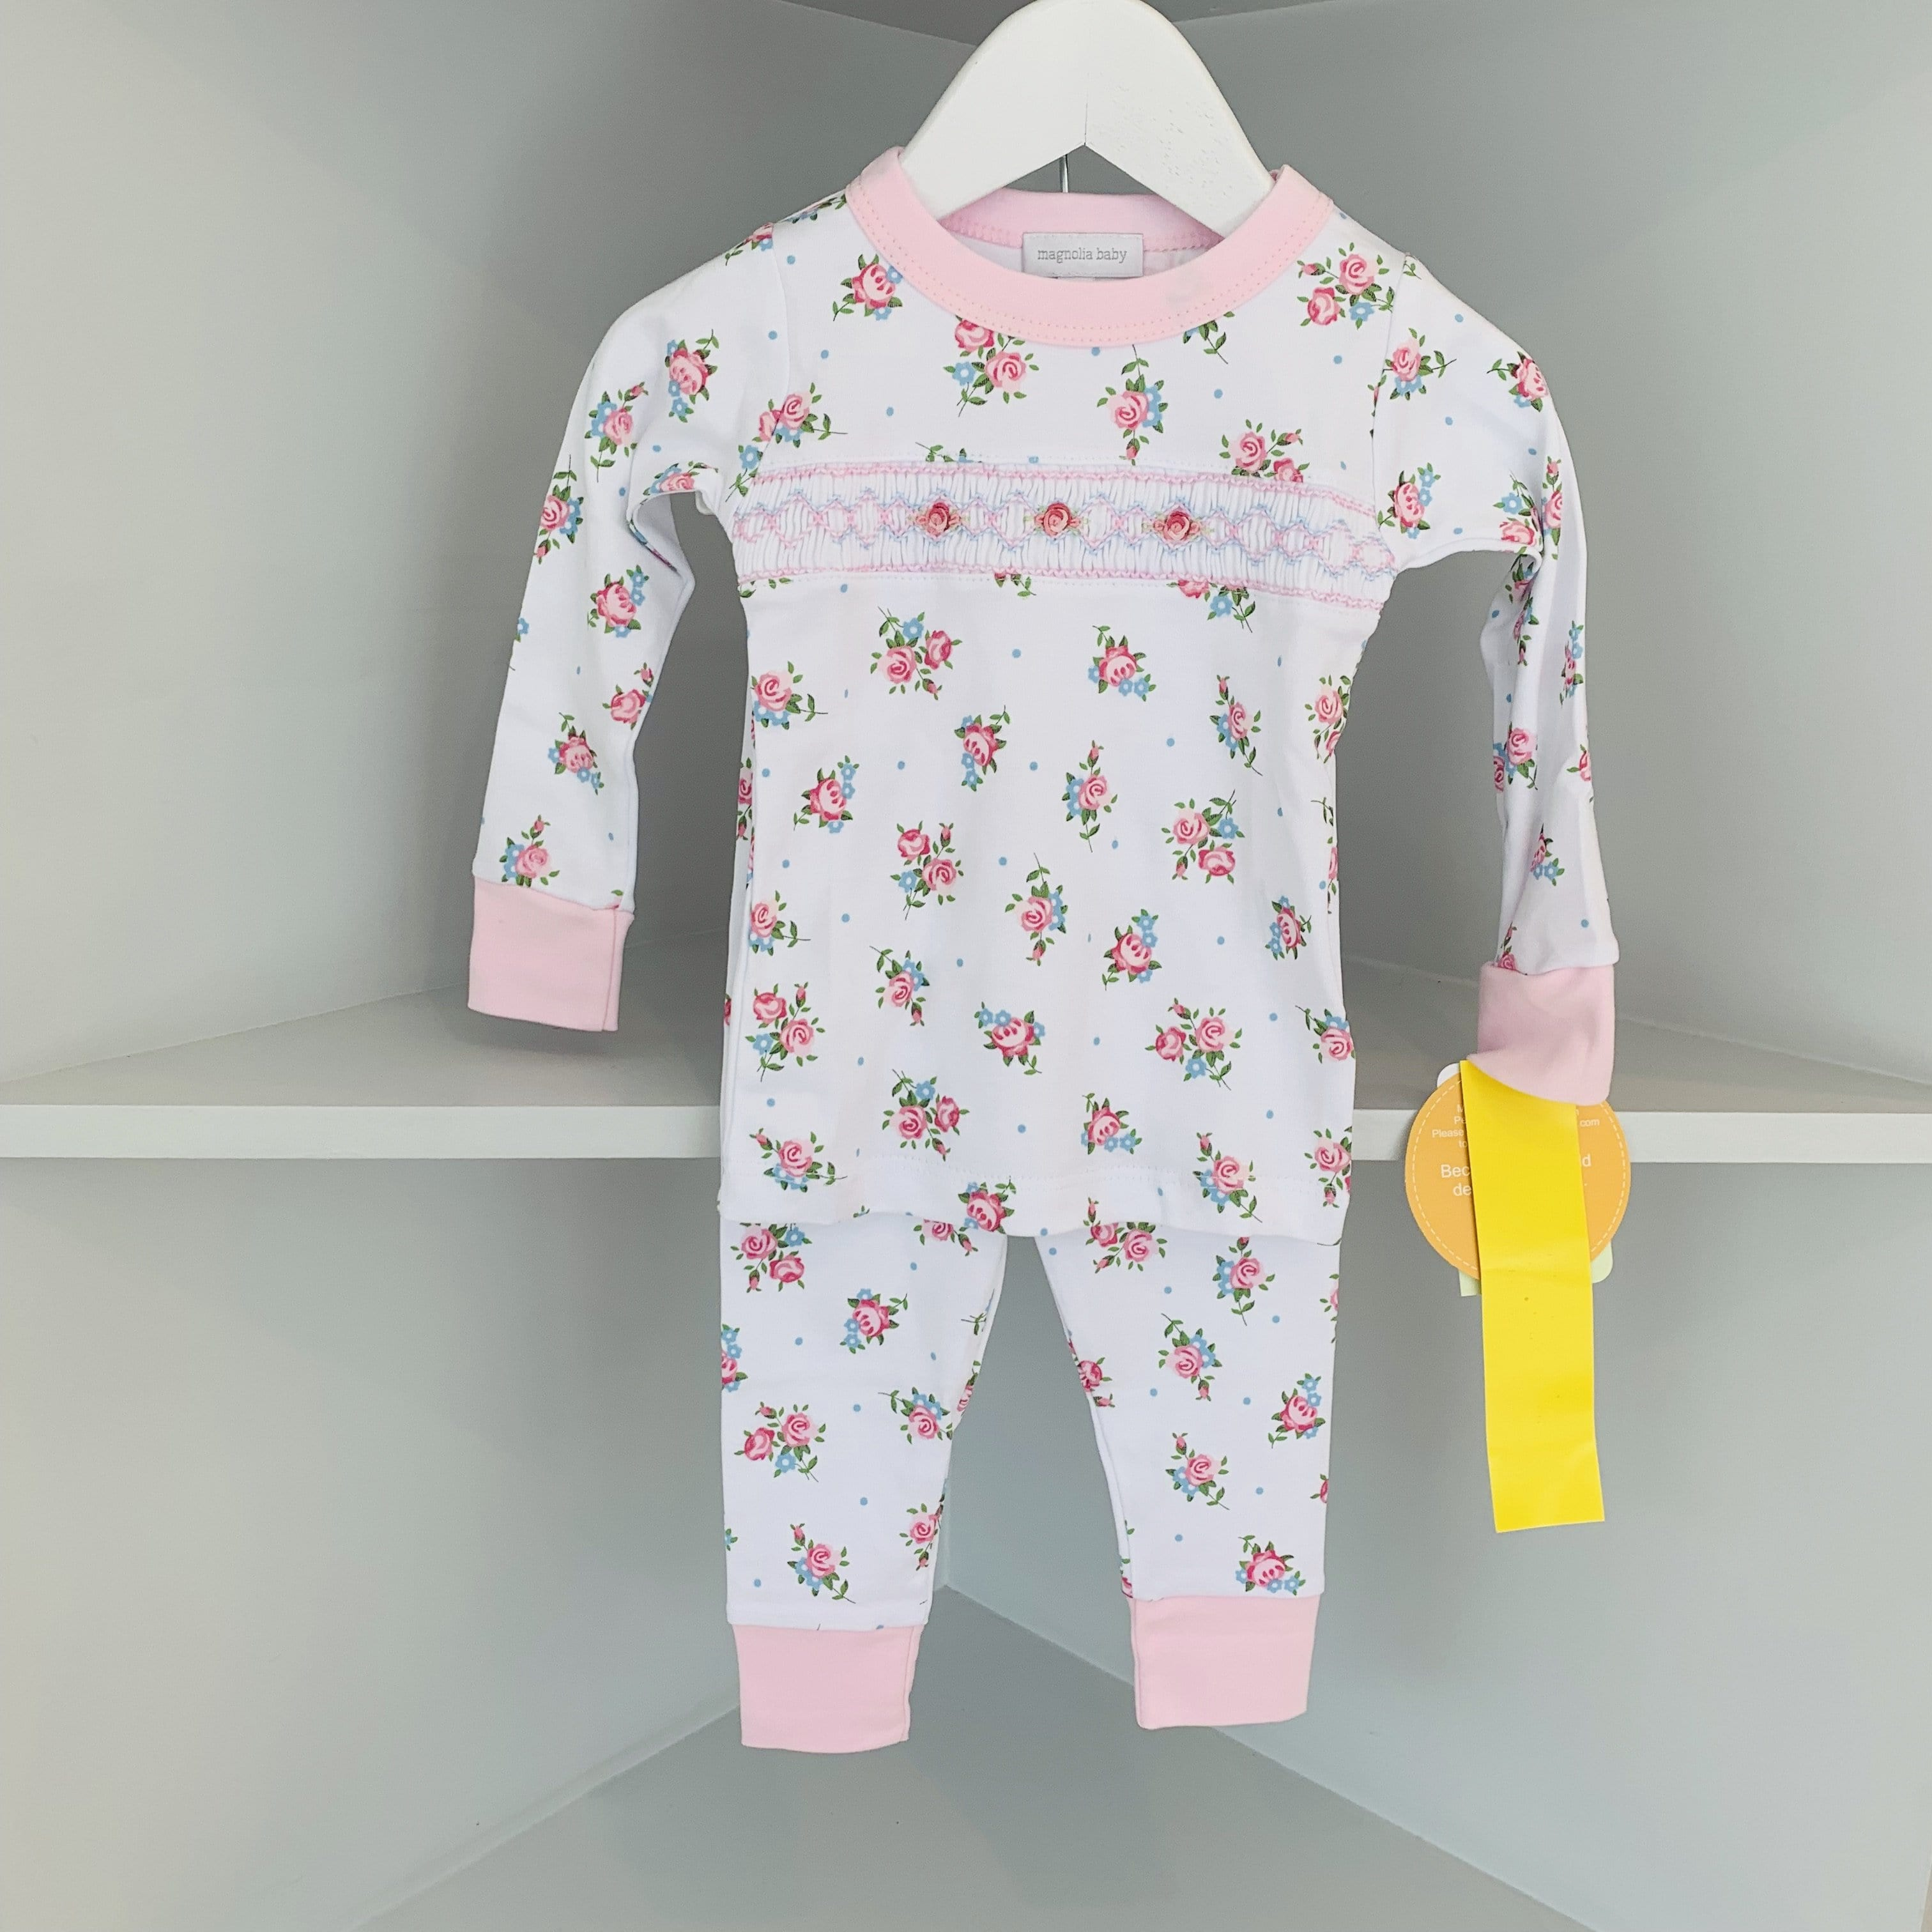 PIPER'S GARDEN SMOCKED PYJAMAS